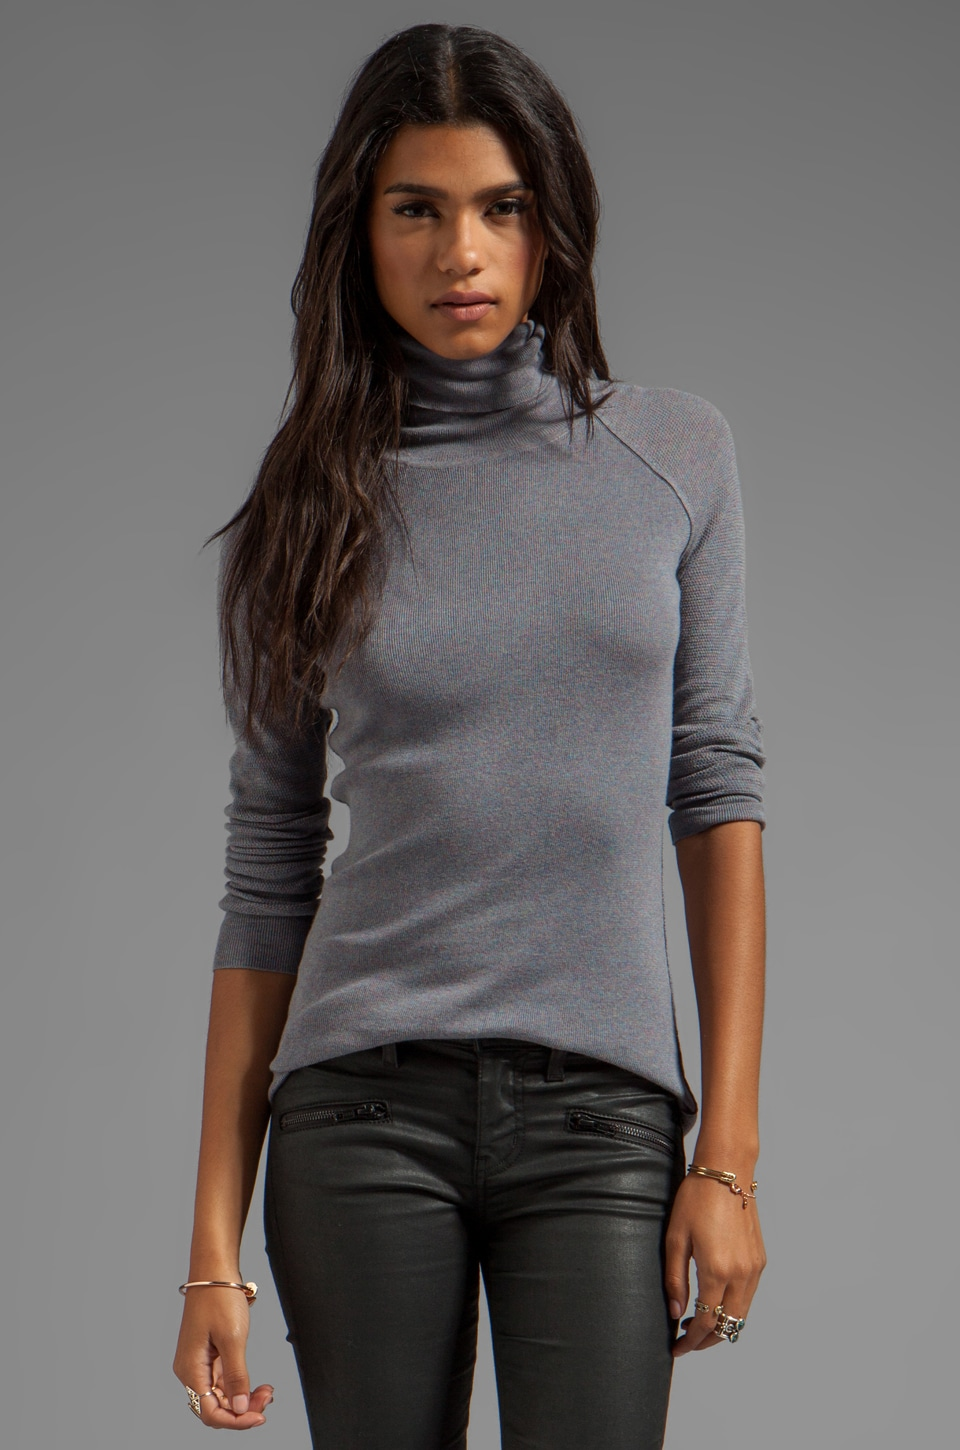 Inhabit Cotton Turtleneck in Grey